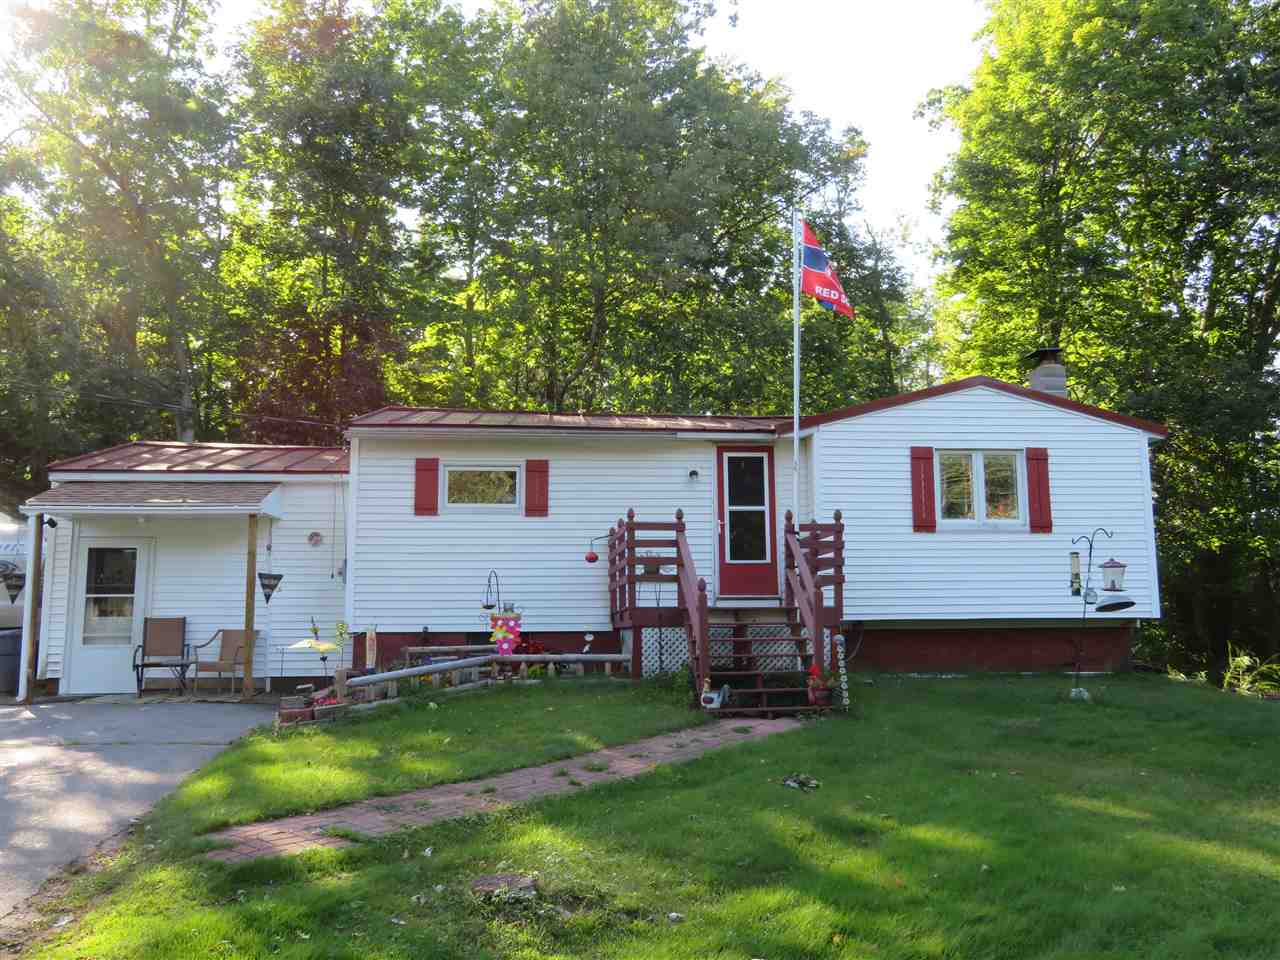 Photo of 6 Acox Lane Brentwood NH 03833